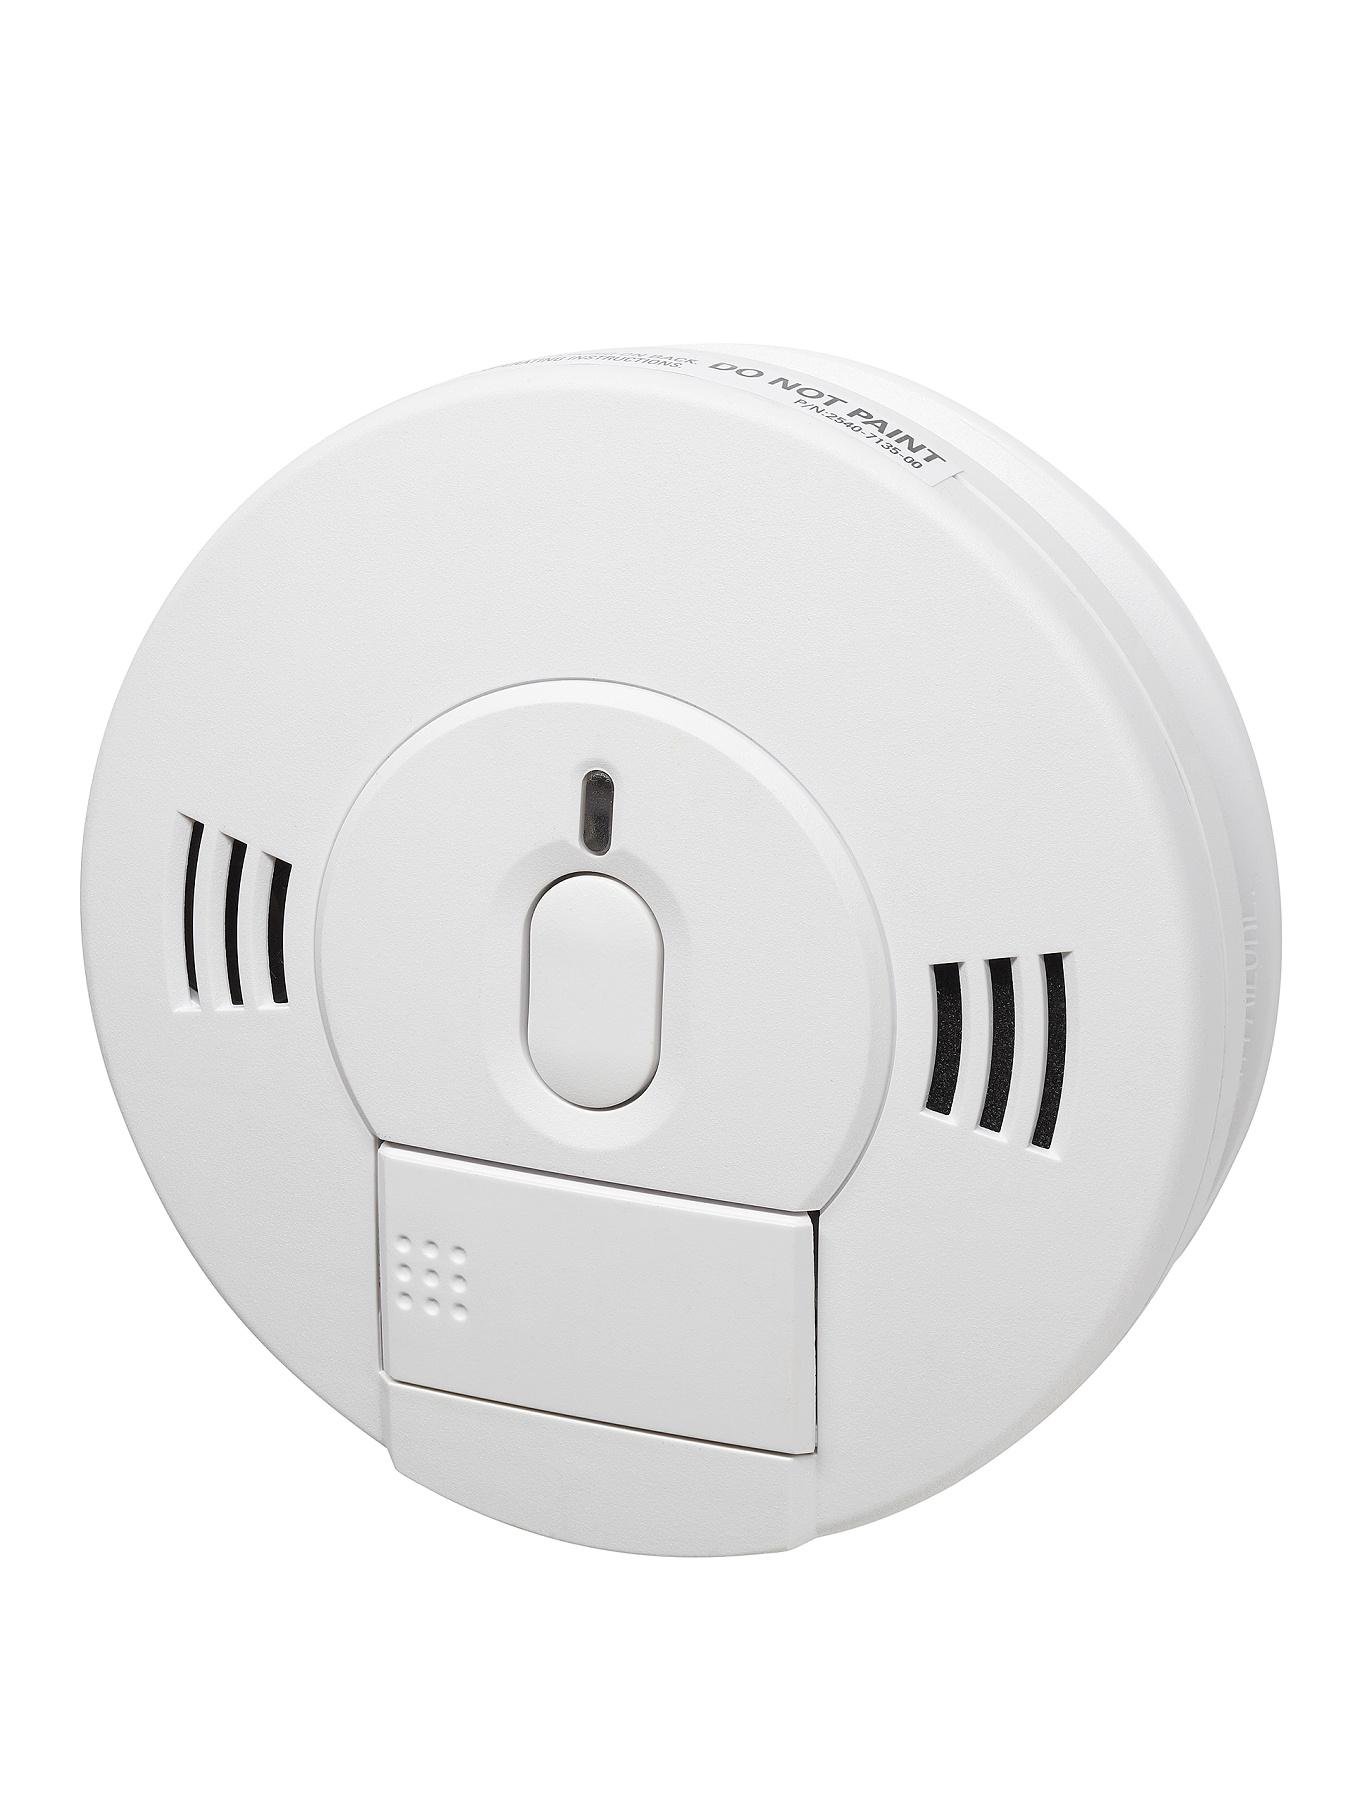 Kidde 10SCO 10 Year 2-in-1 Smoke and Carbon Monoxide Alarm